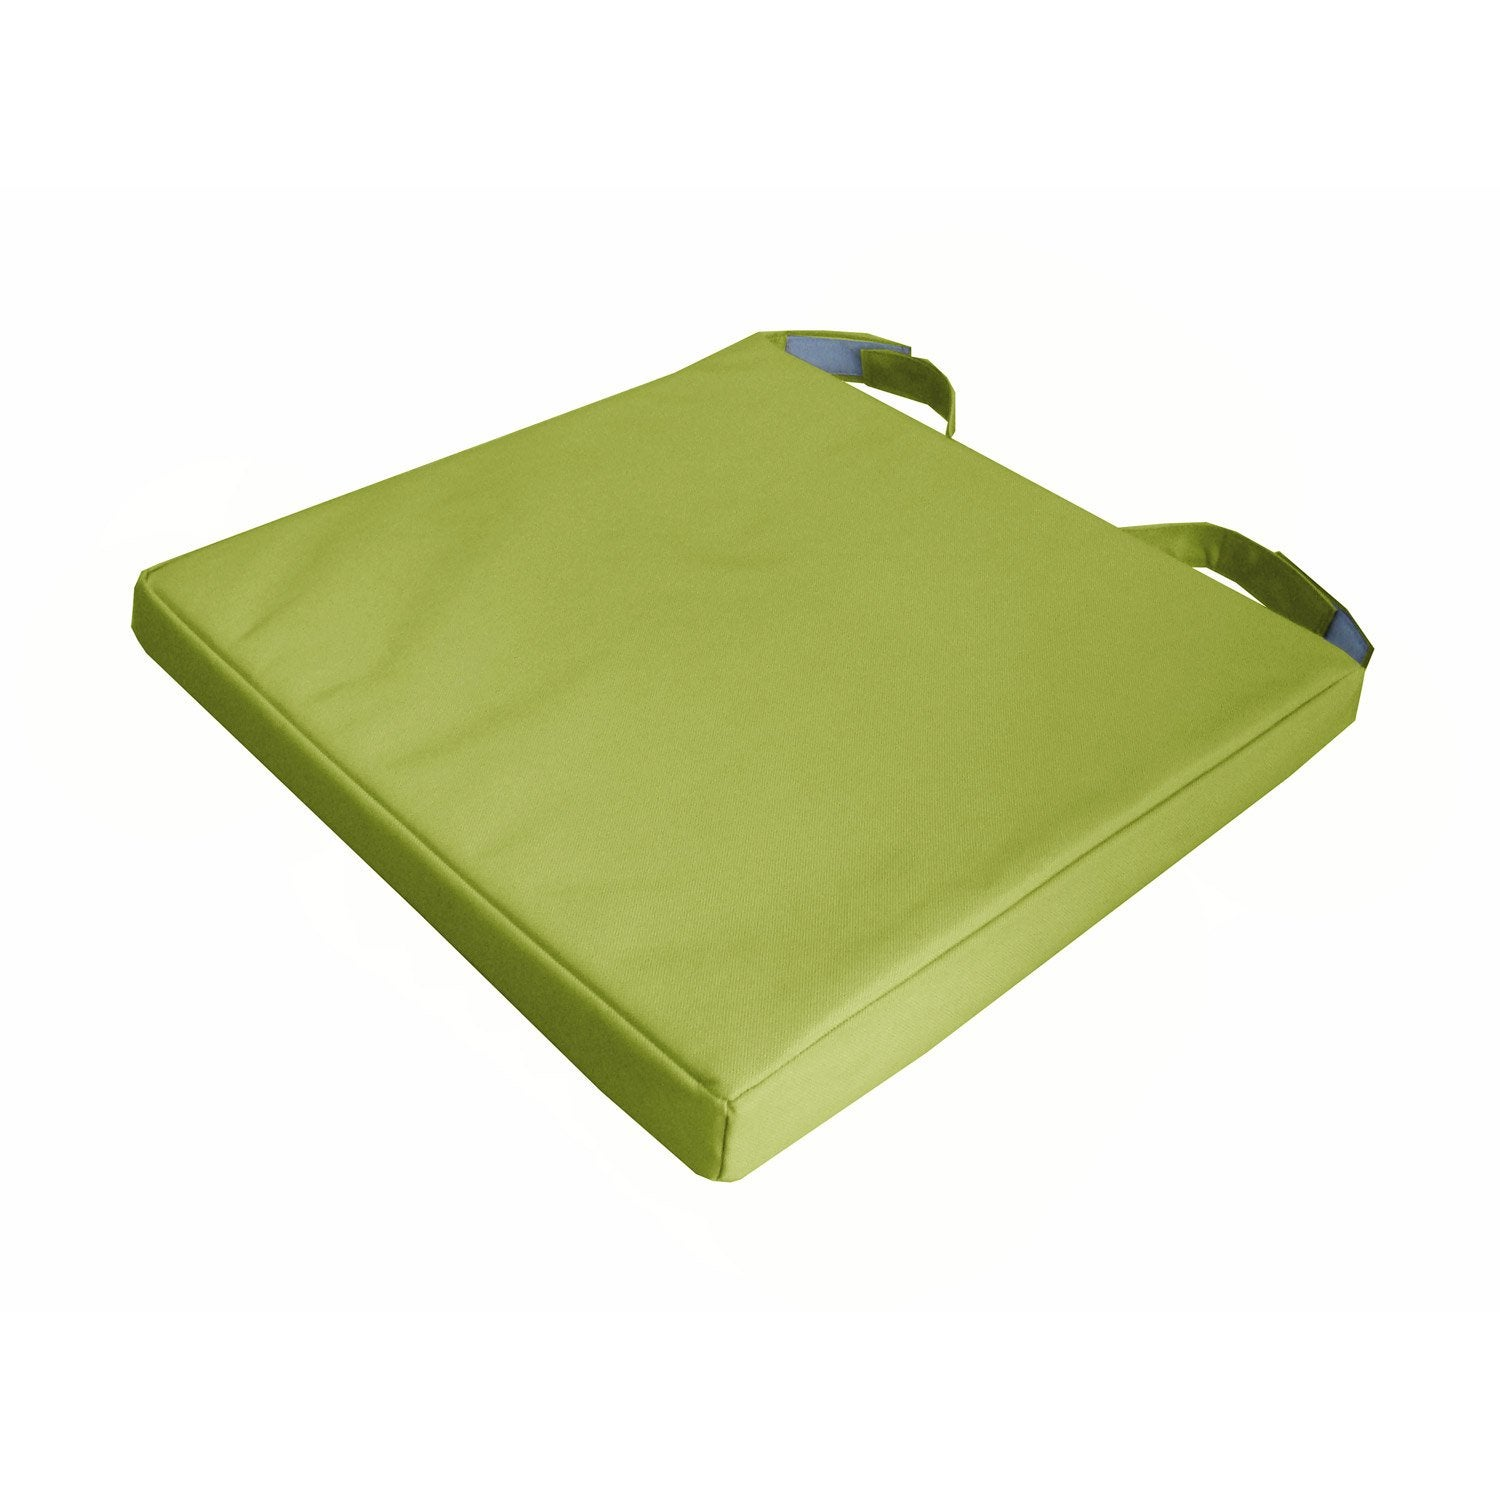 Galette de chaise plastifiee for Galette de chaise rectangulaire